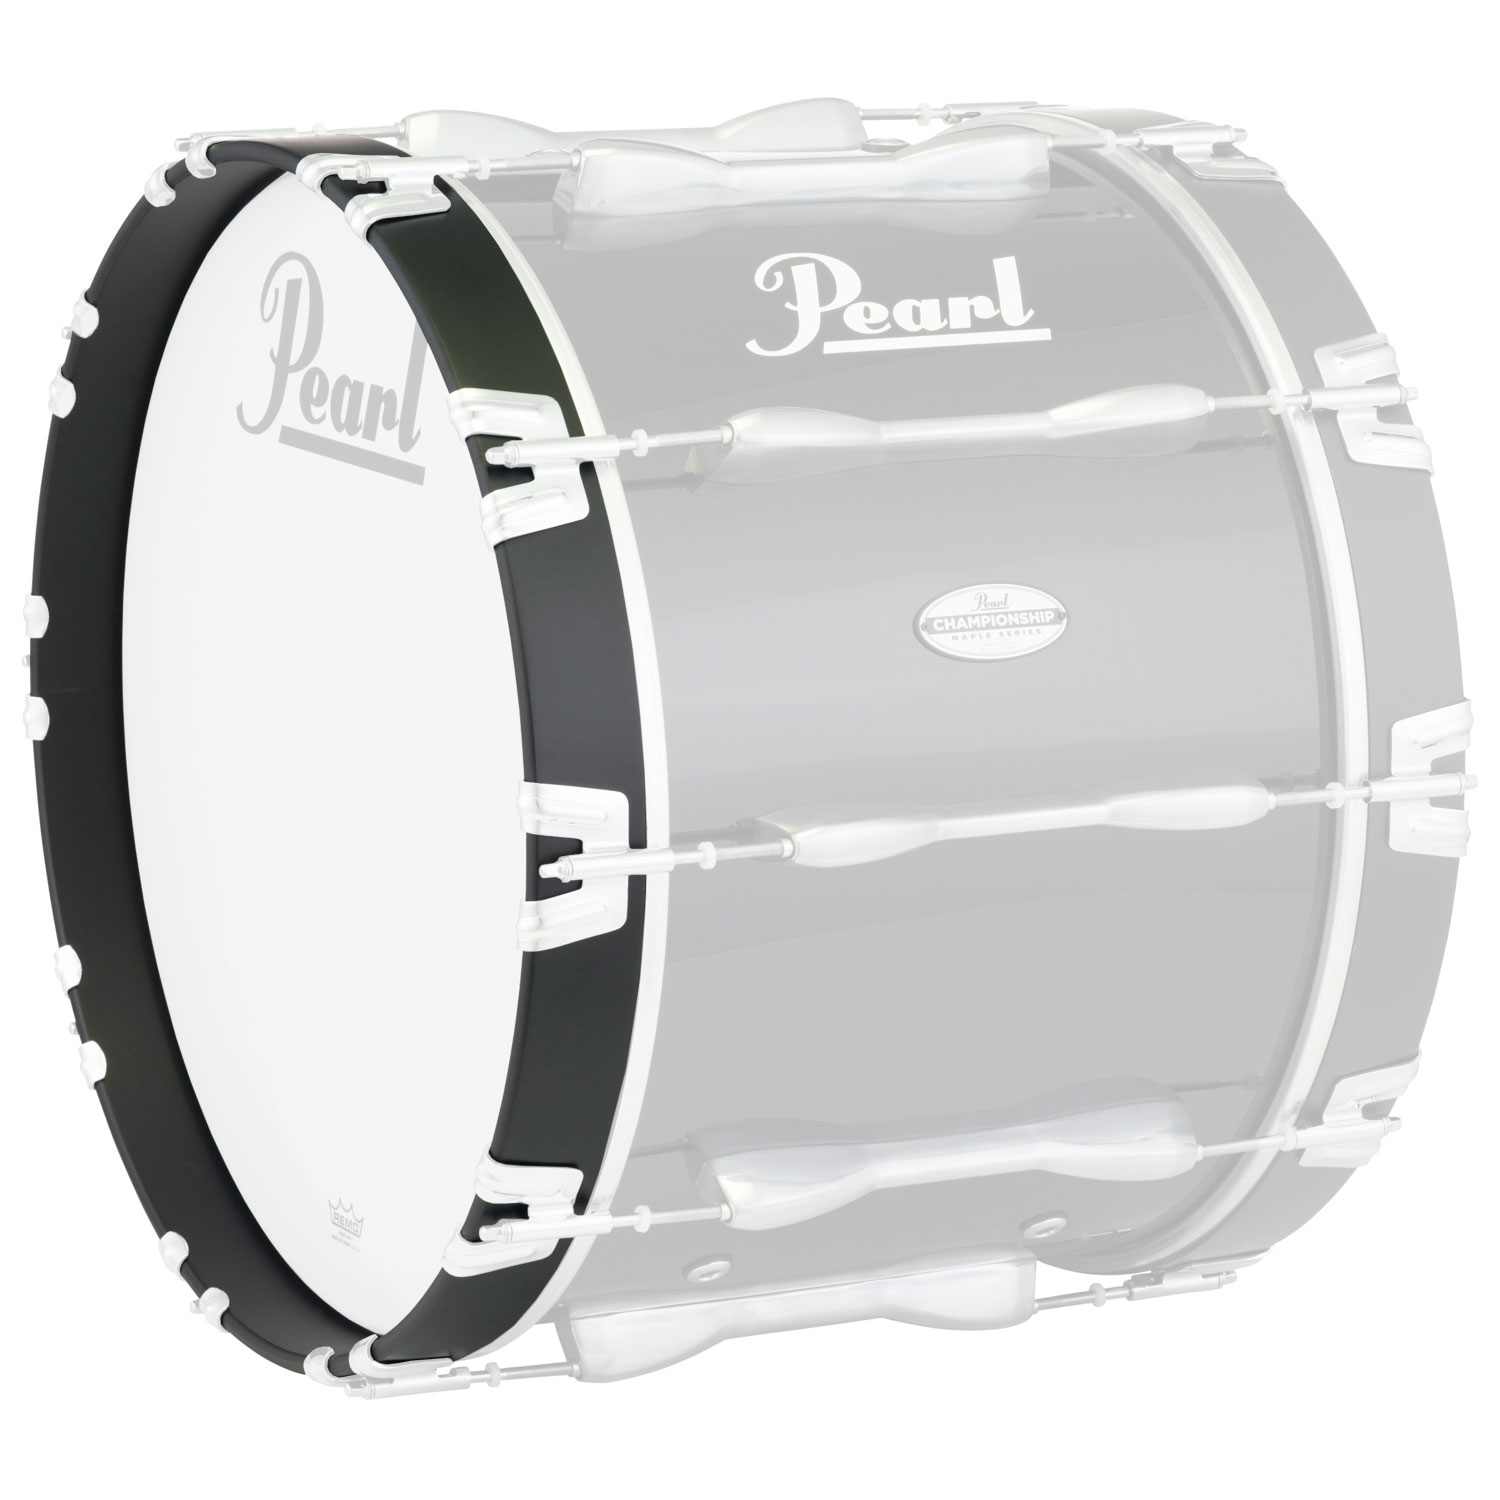 "Pearl 22"" Championship Bass Hoop, Gloss Black, 2"" Wide"